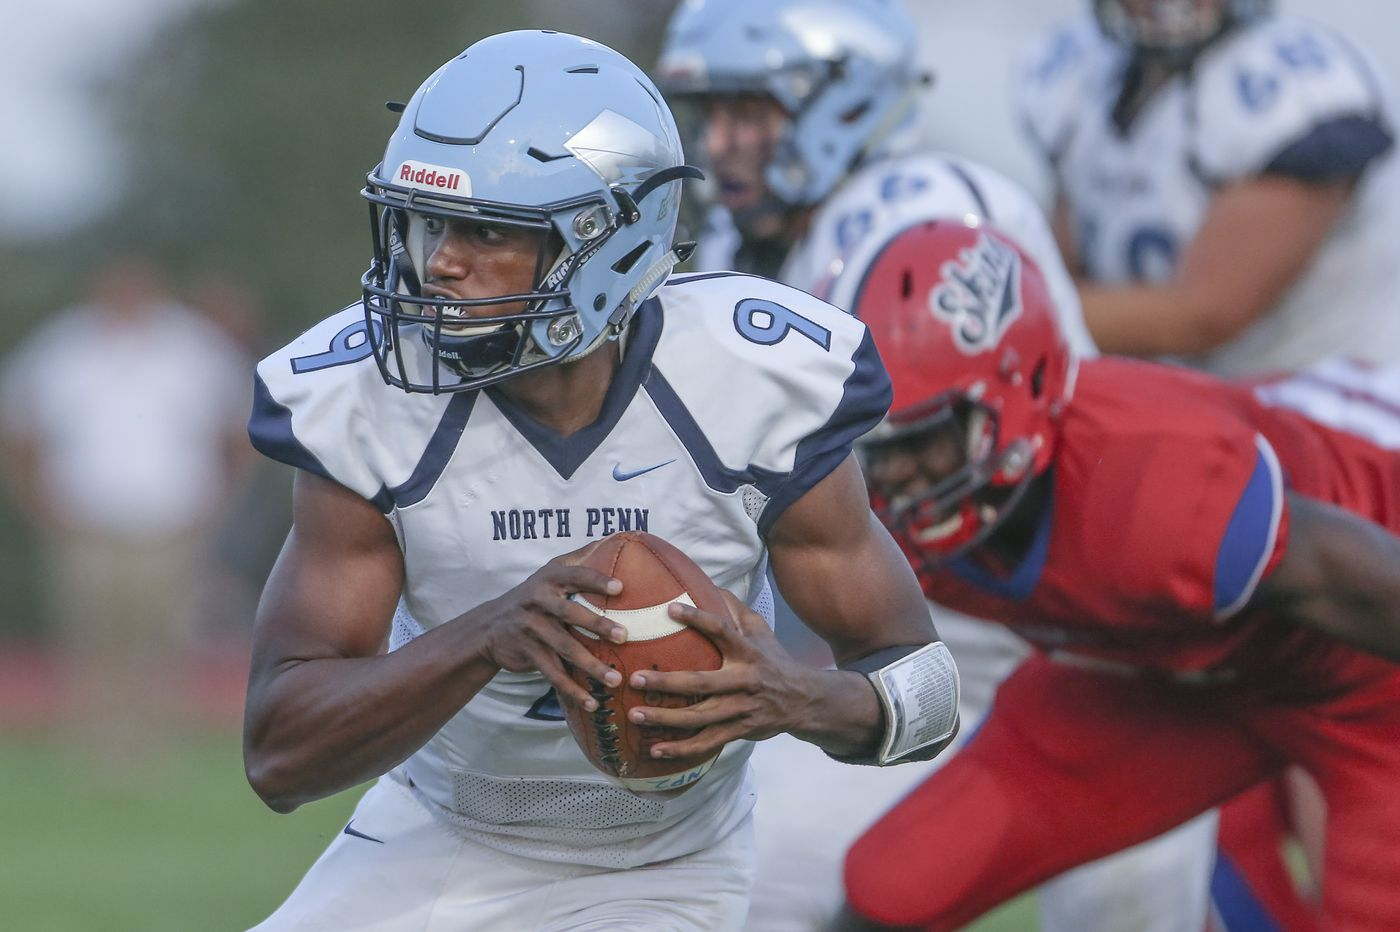 Friday's Southeastern Pa. football roundup: Ayoub Cherradi kicks North Penn past Council Rock South